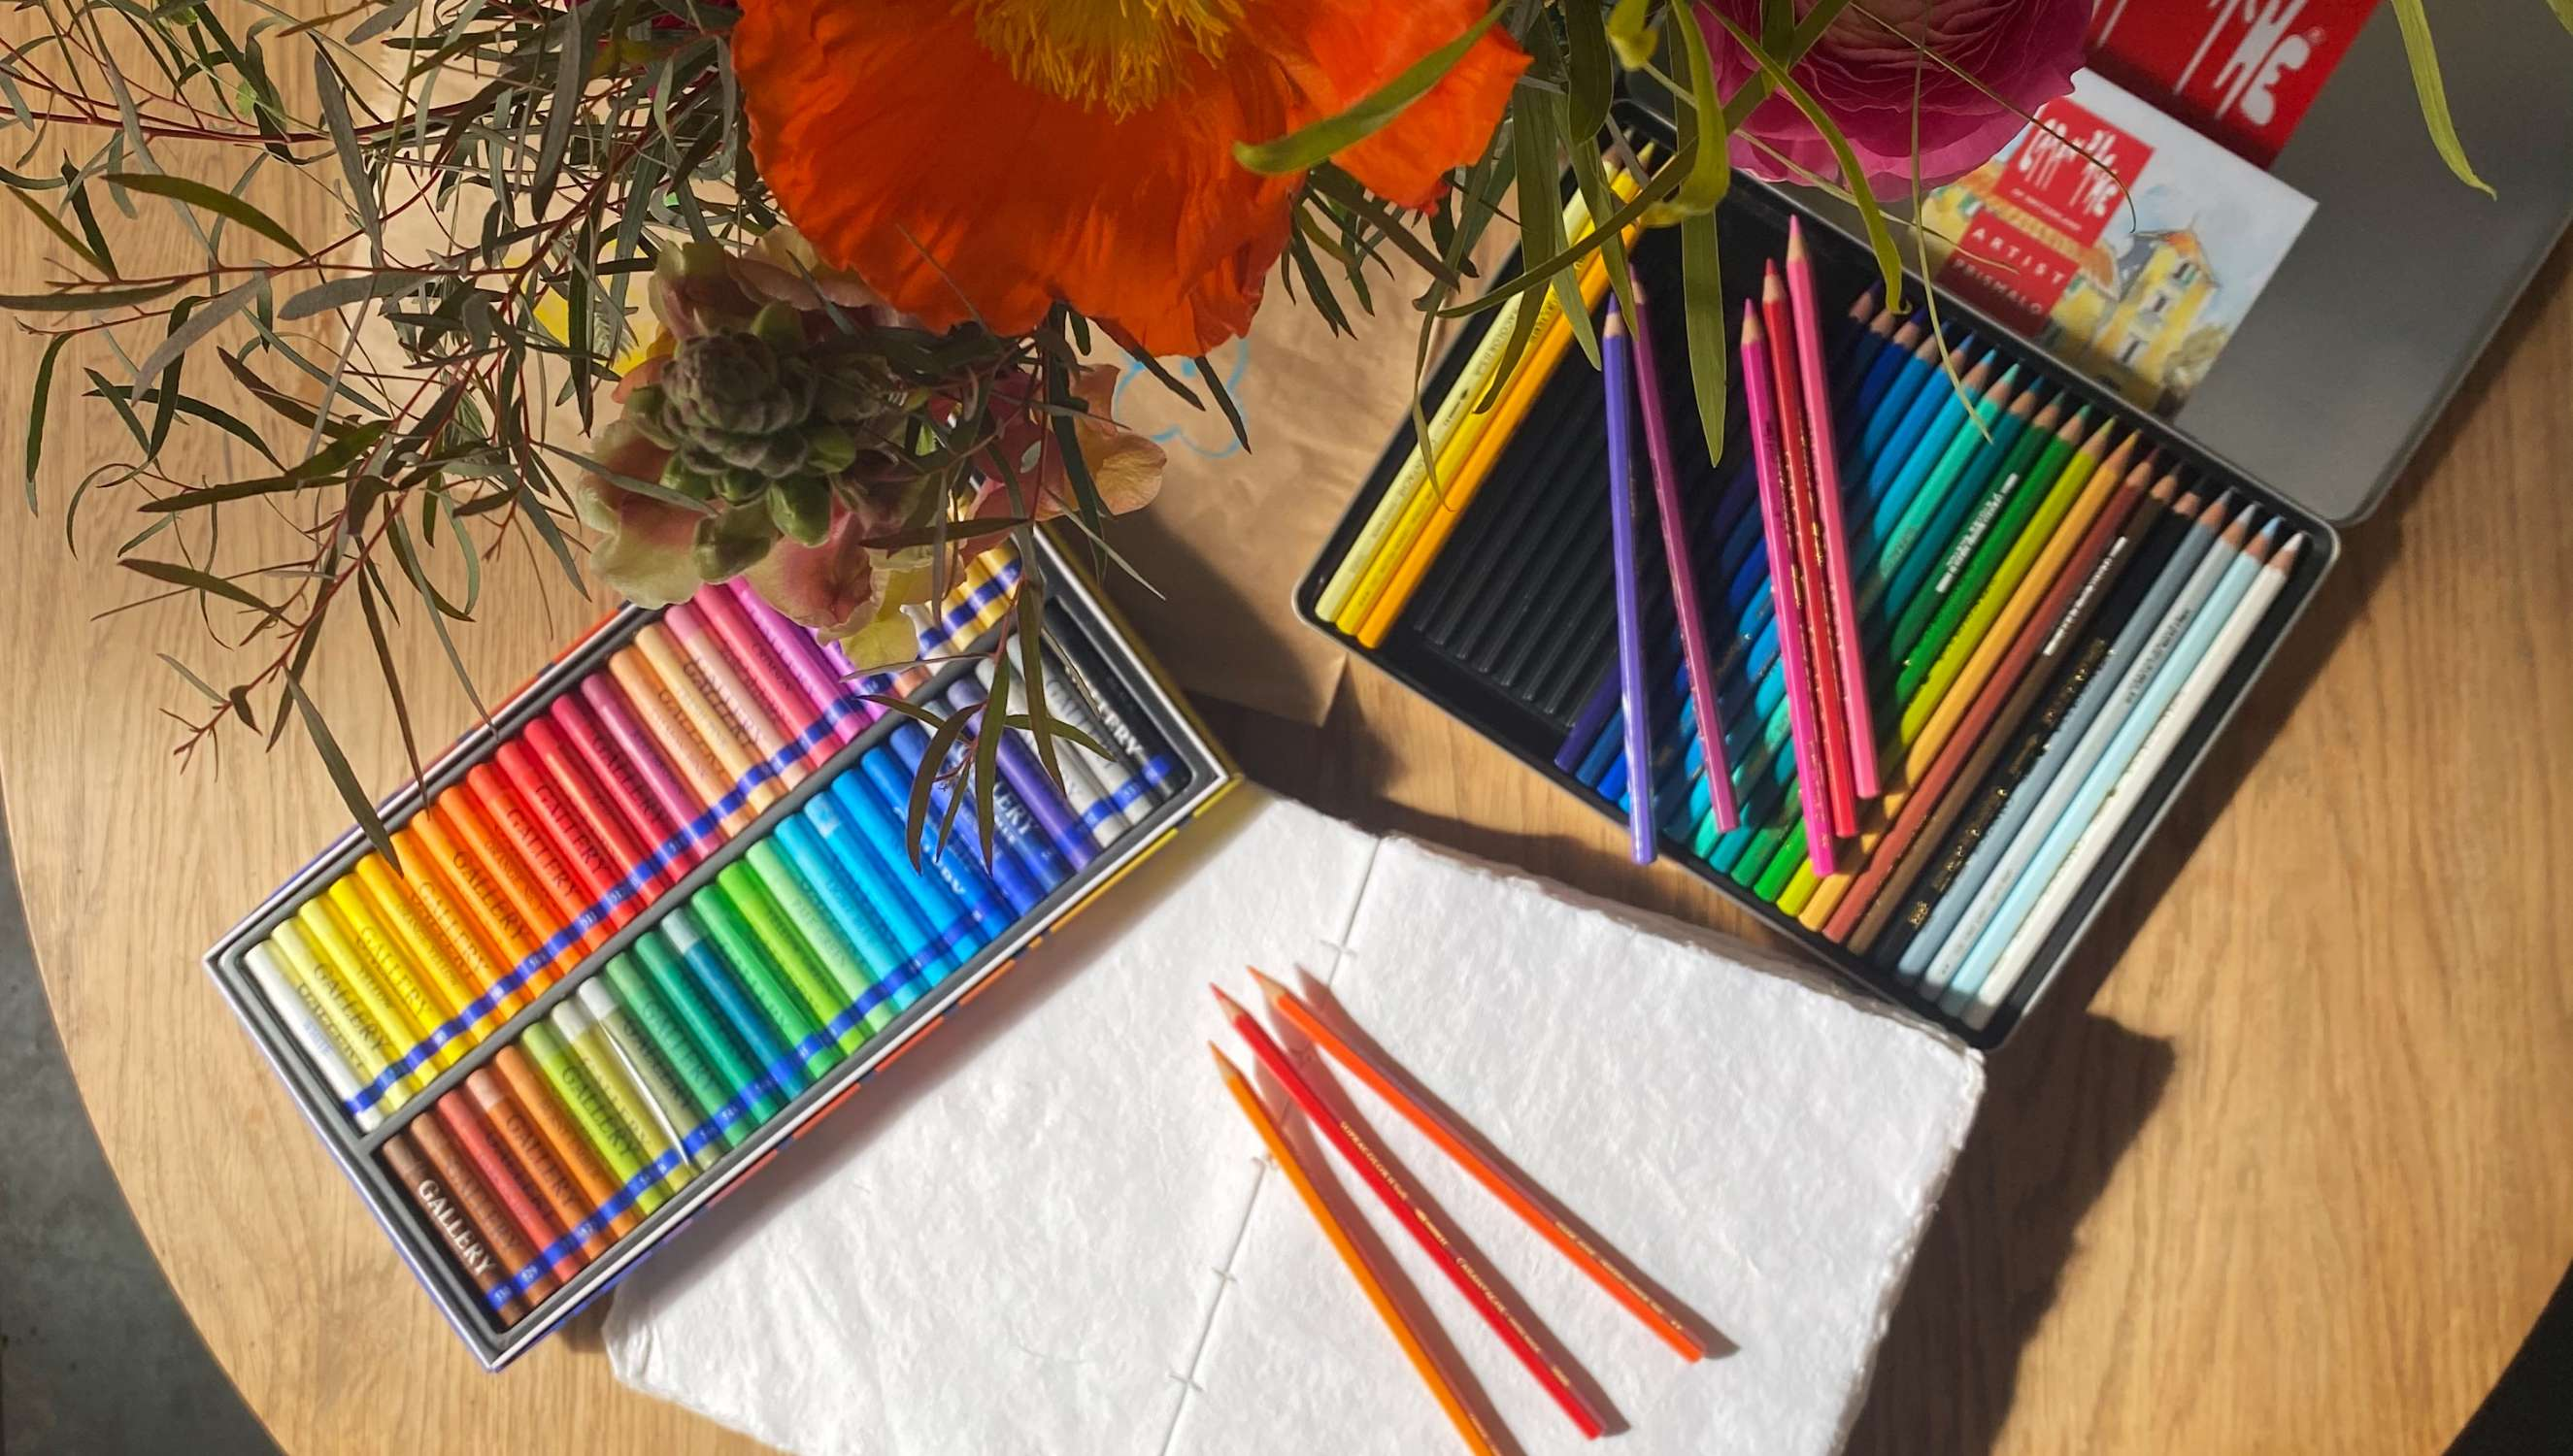 Artist's Tools: The Home Creative